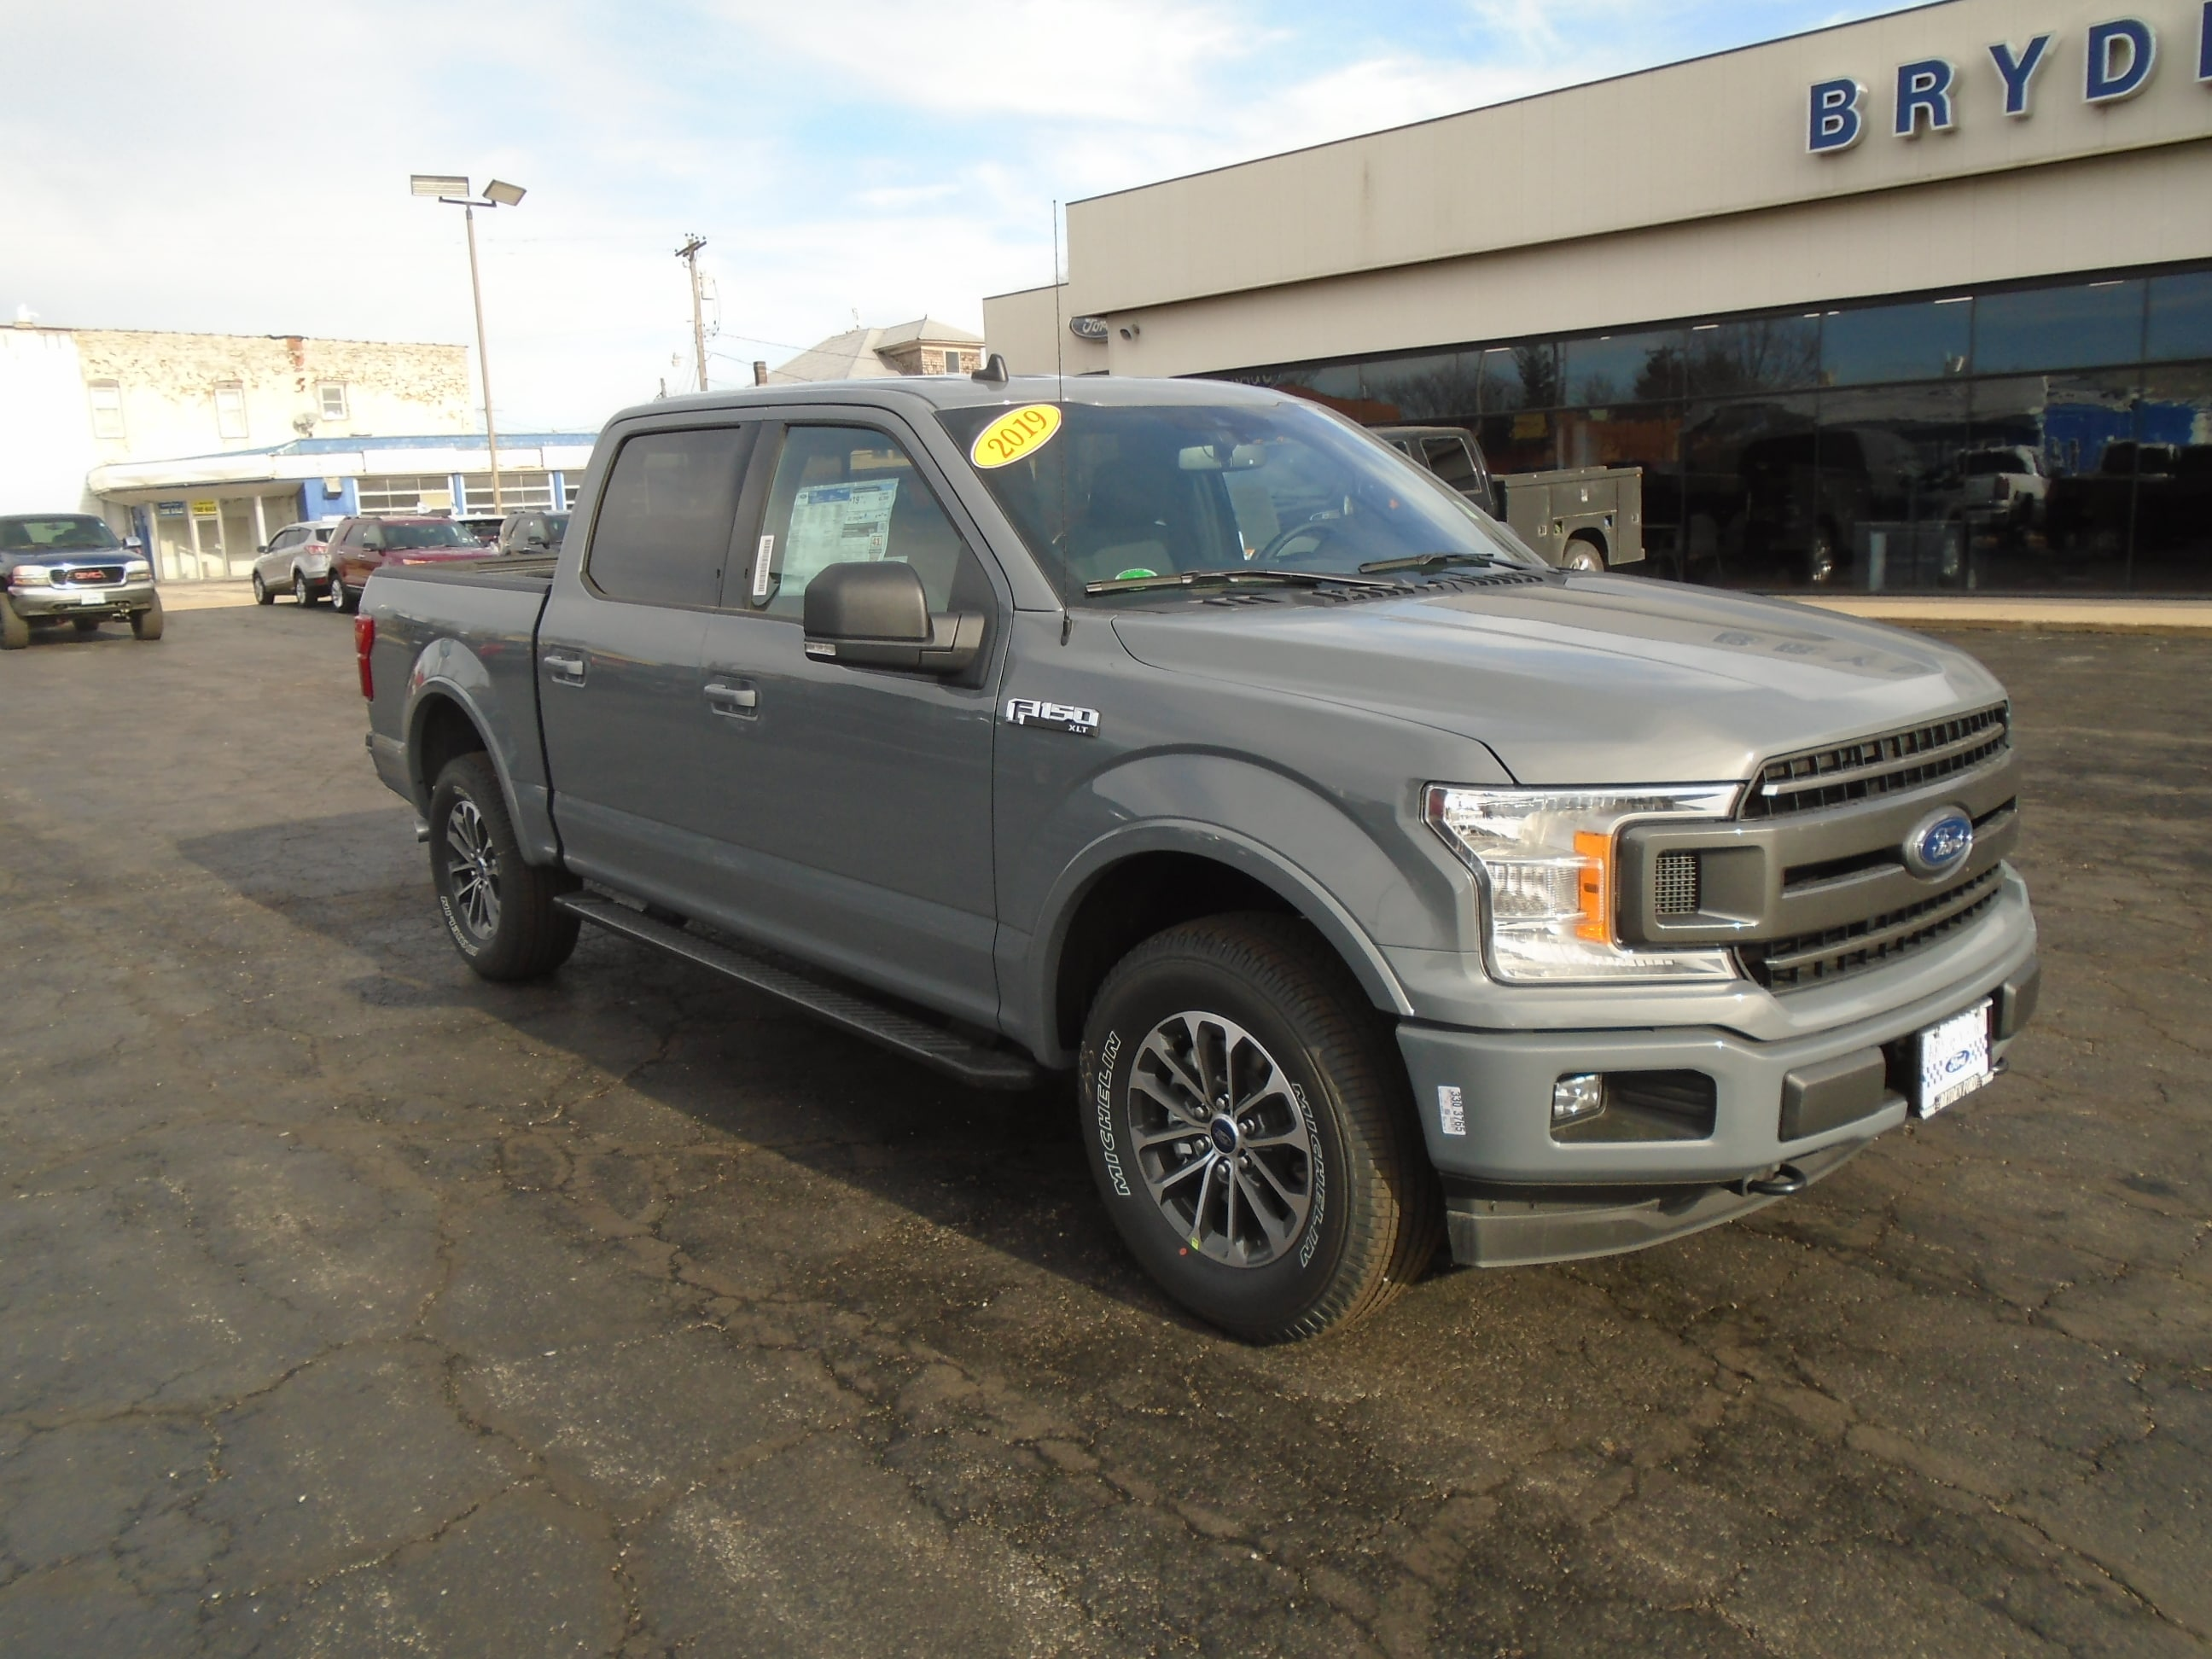 2019 Ford F150 SuperCrew XLT 4X4 5.5' Bed Truck